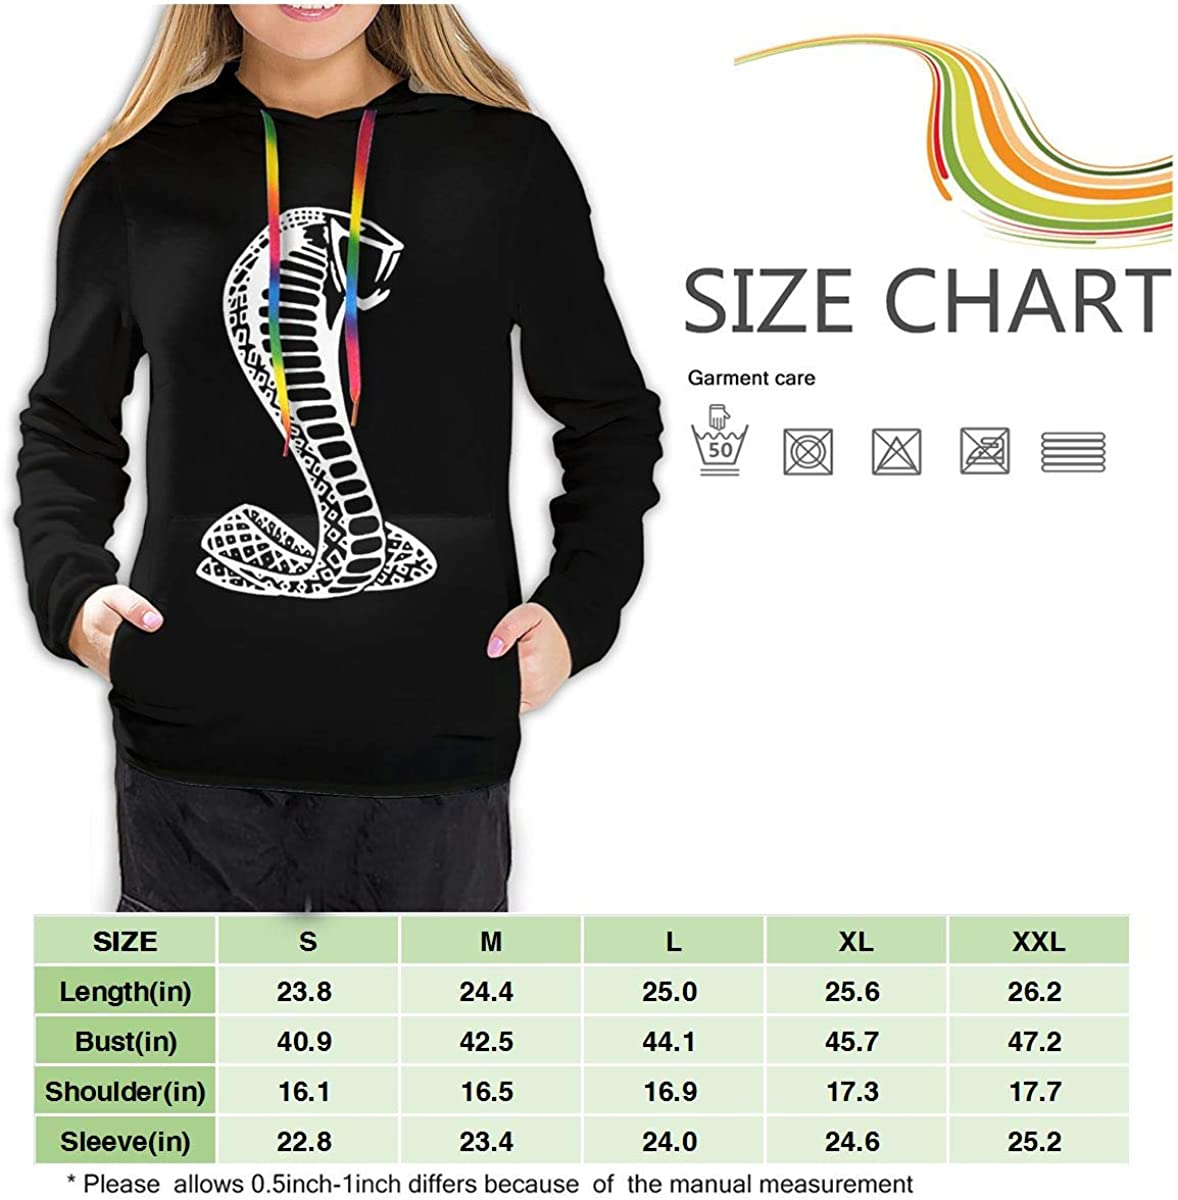 GmCslve Ford Mustang American Shelby White Snake Women Long Sleeve Hoodies Sweatshirts Pullover